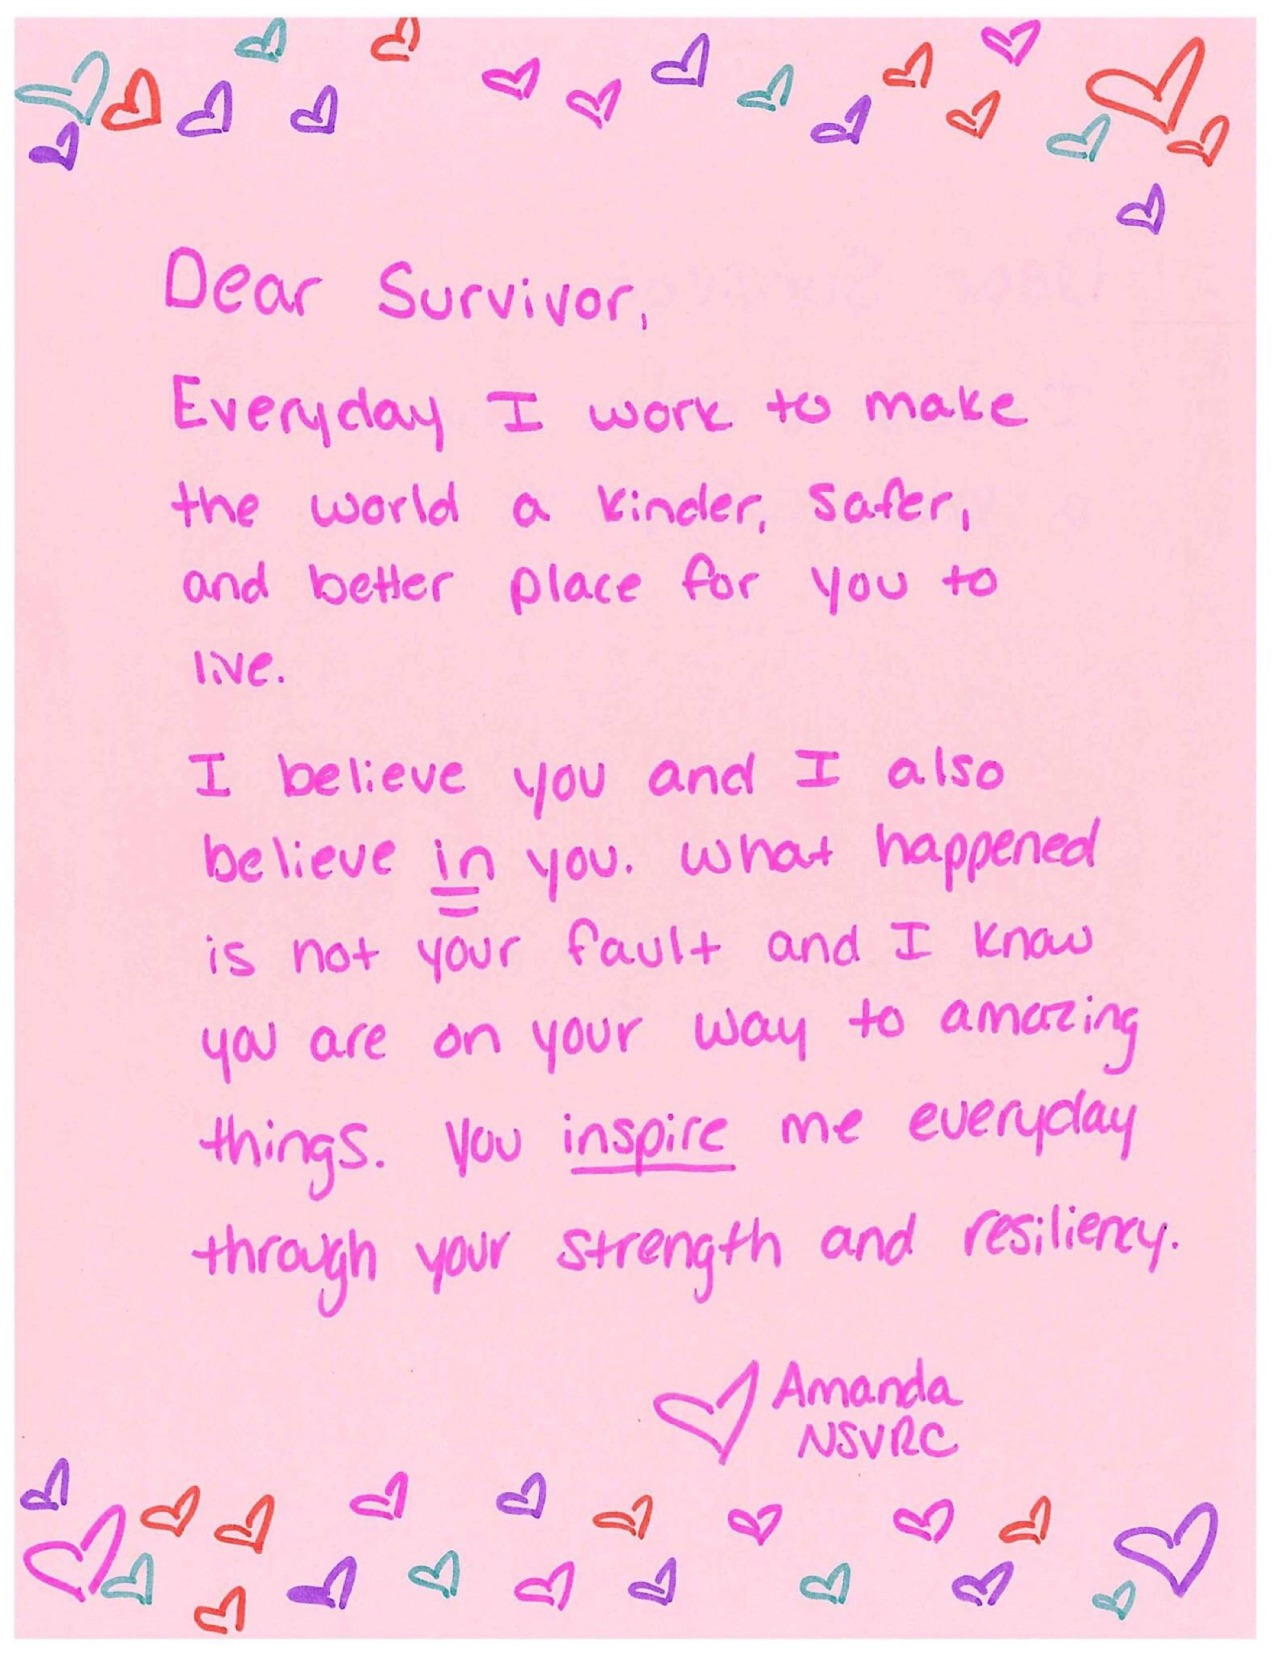 Dear Survivor,  Everyday I work to make the world a kinder, safer, and better place for you to live.   I believe you and I also believe in you. What happened is not your fault and I know you are on your way to amazing things. You inspire me everyday through your strength and resiliency.   Love, Amanda NSVRC